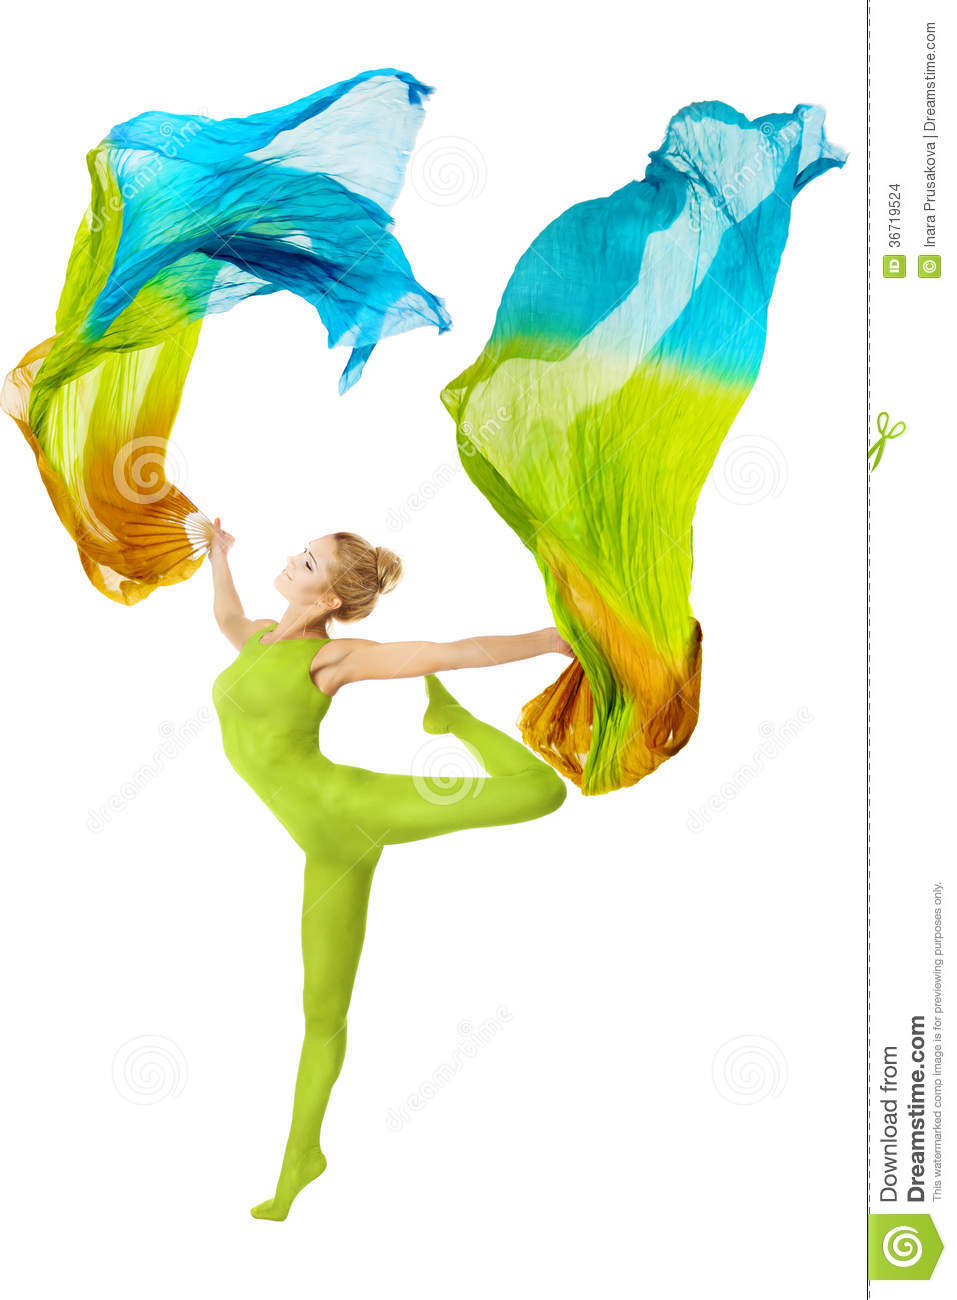 Woman dancing with fluttering flying colorful fabric over white